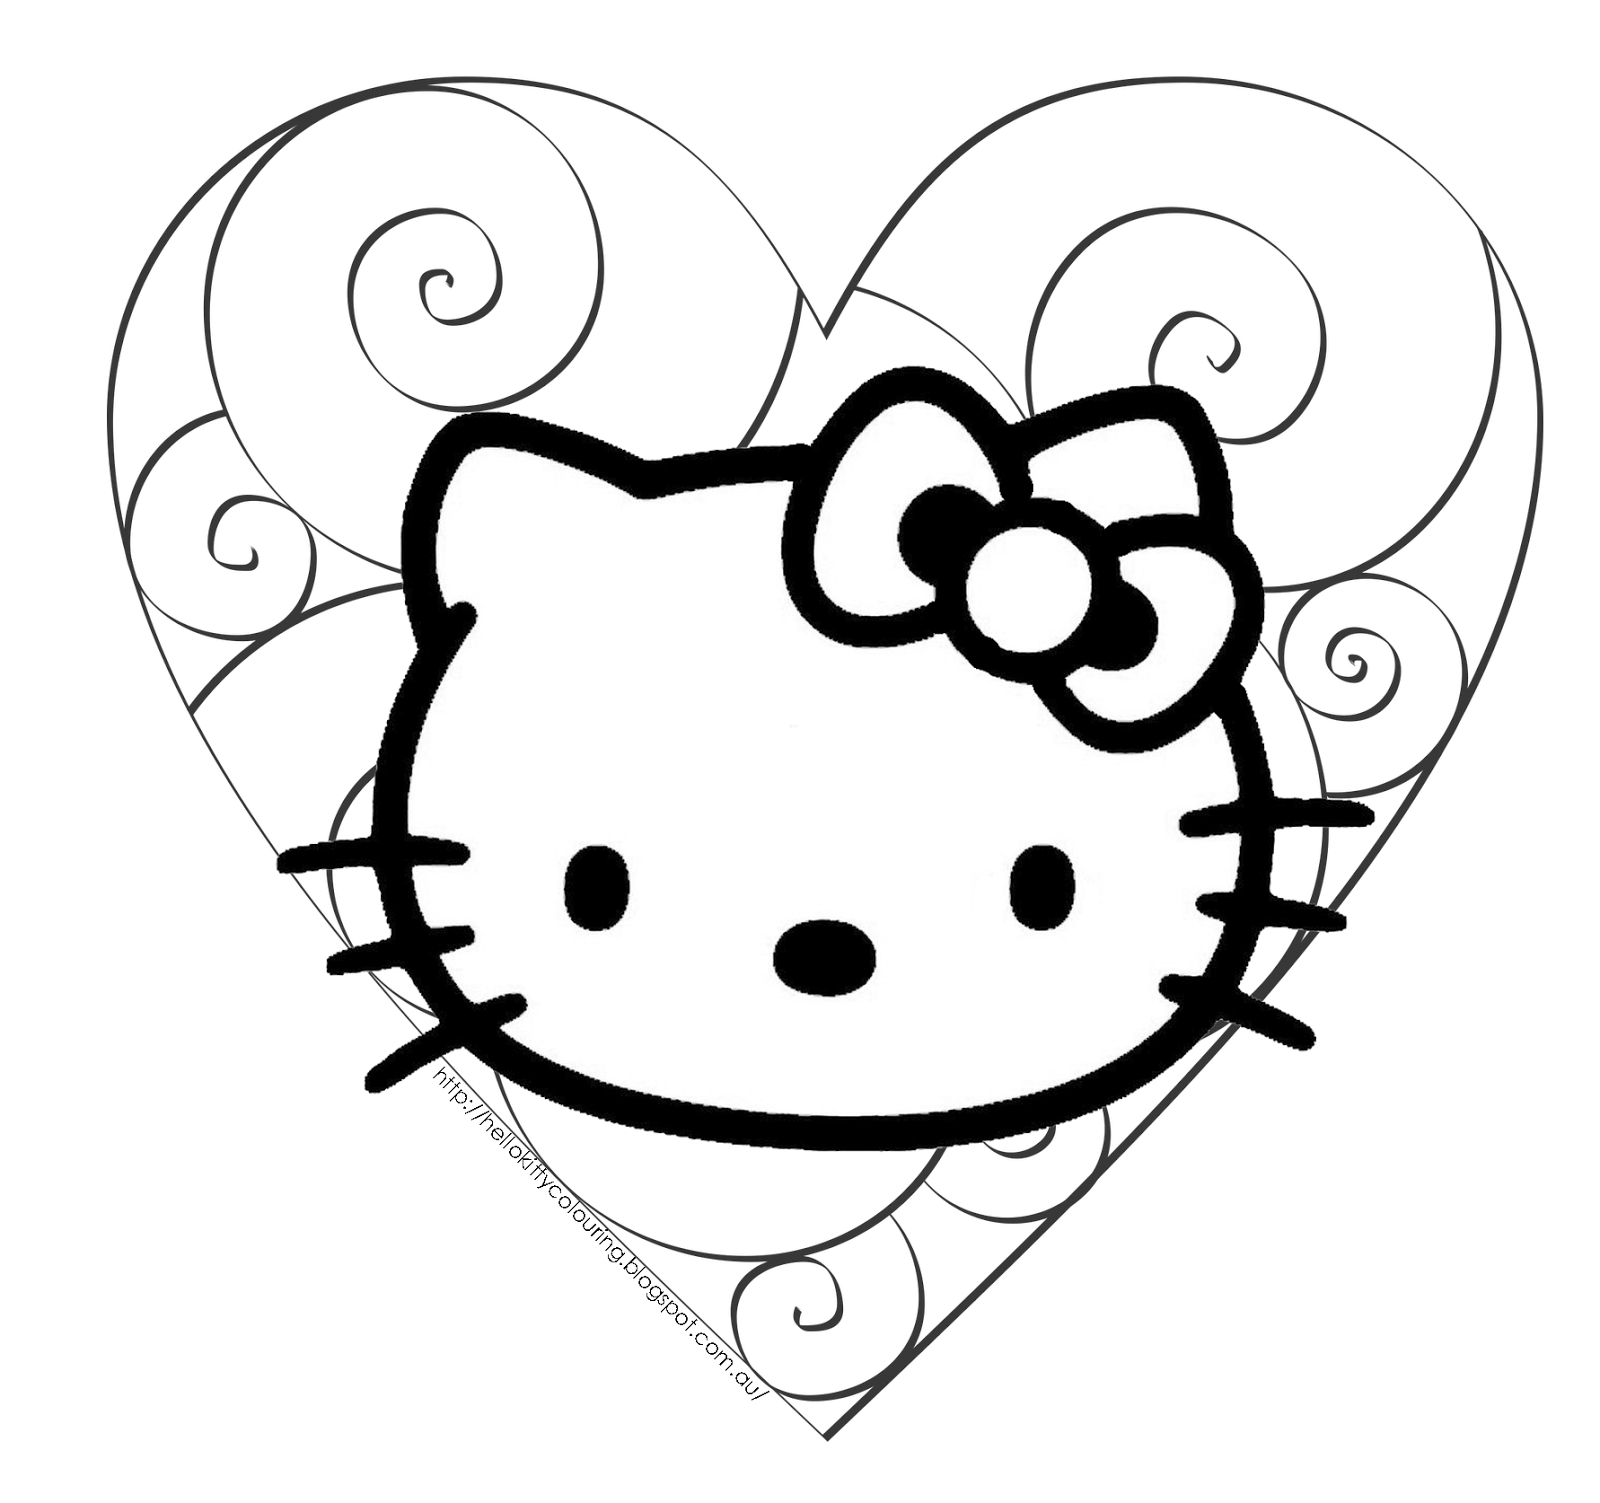 Share I Think My Favorite Coloring Page Here Is The One Of Hello